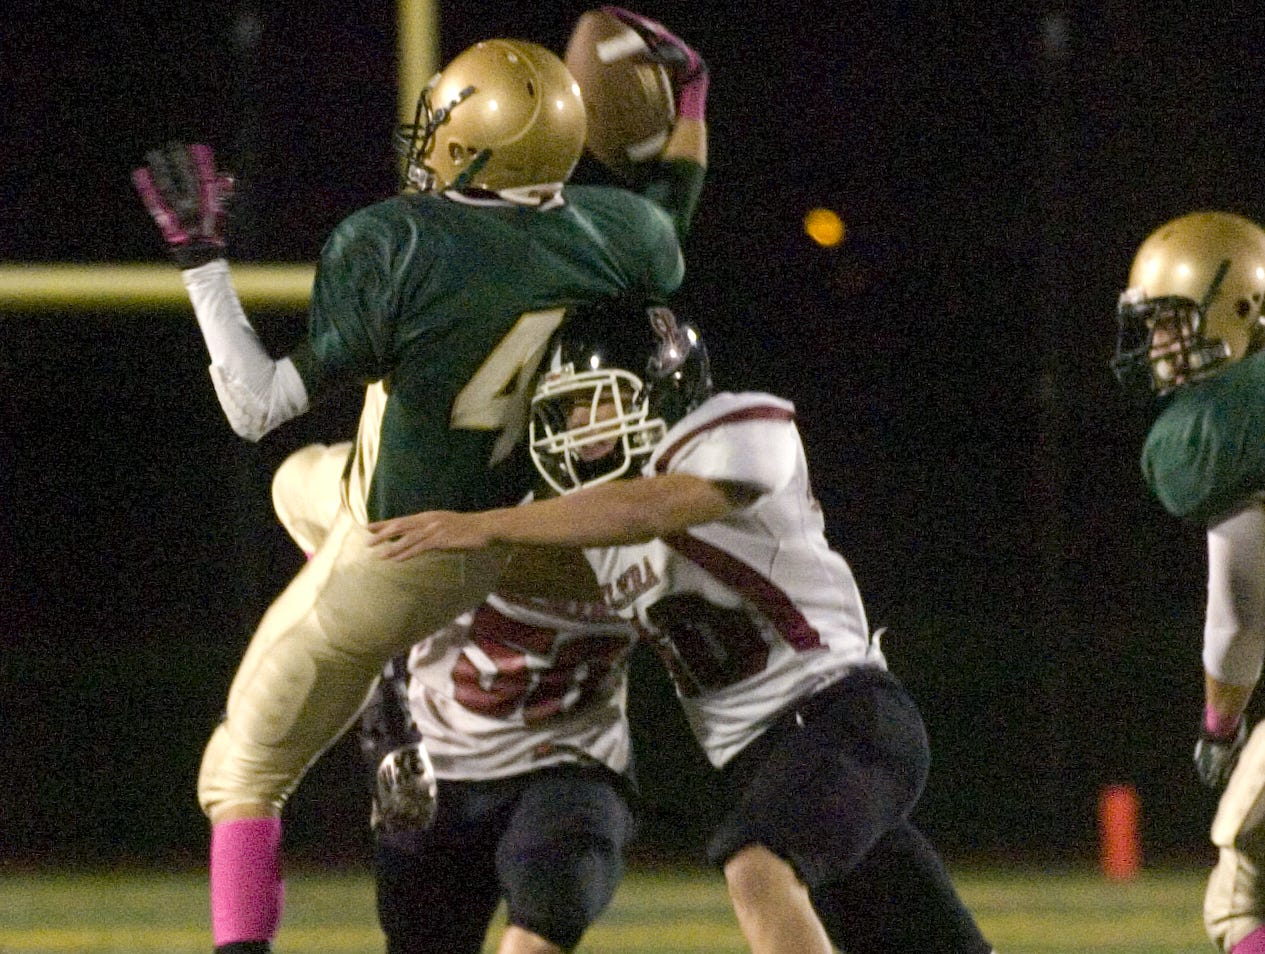 In 2012, Elmira's Josh Townsend tackles Vestal's Andrew O'Hara in the first half at Dick Hoover Stadium.